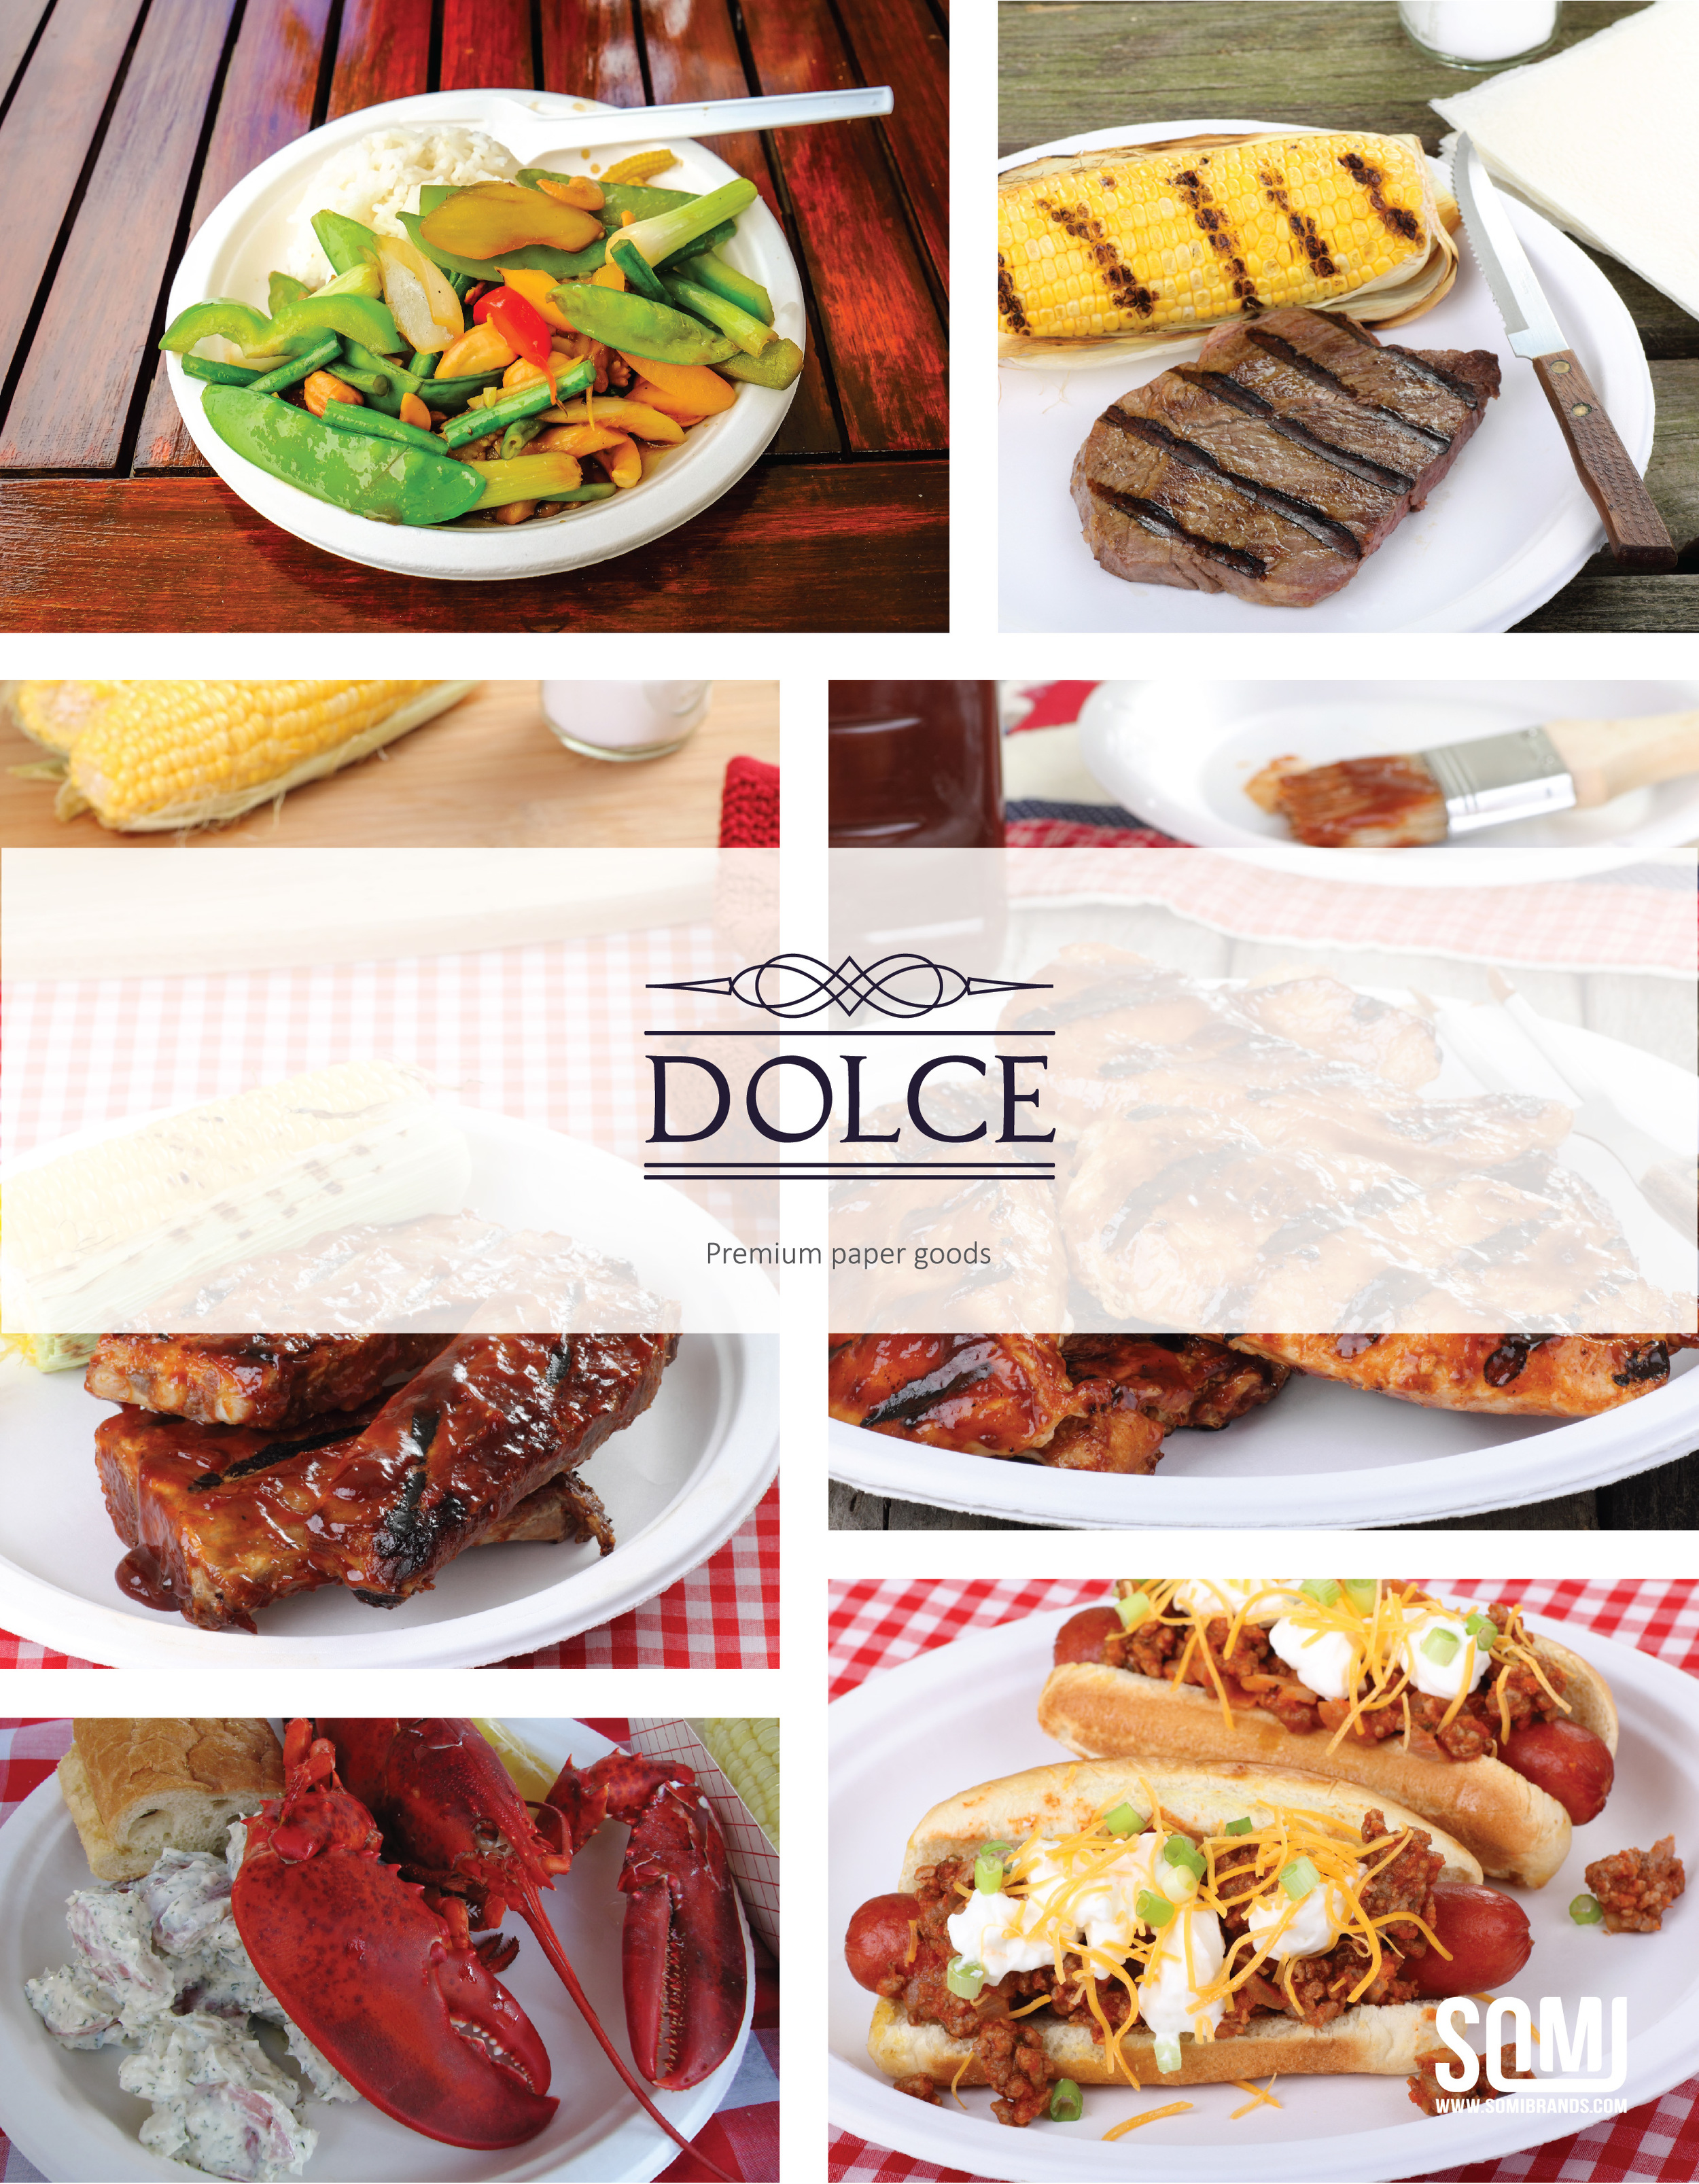 Dolce Plates Brochure